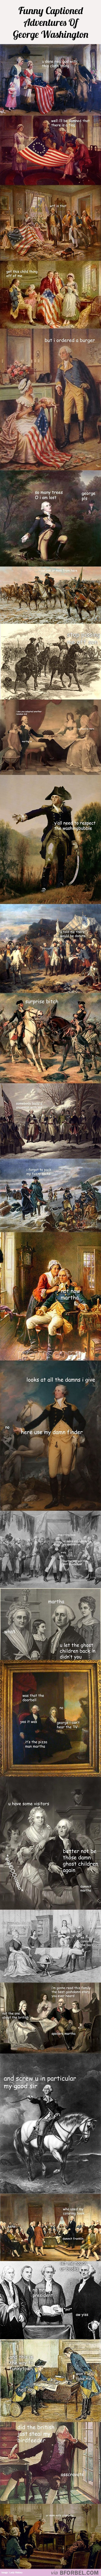 To Be Simply Happy: George Washington Captions